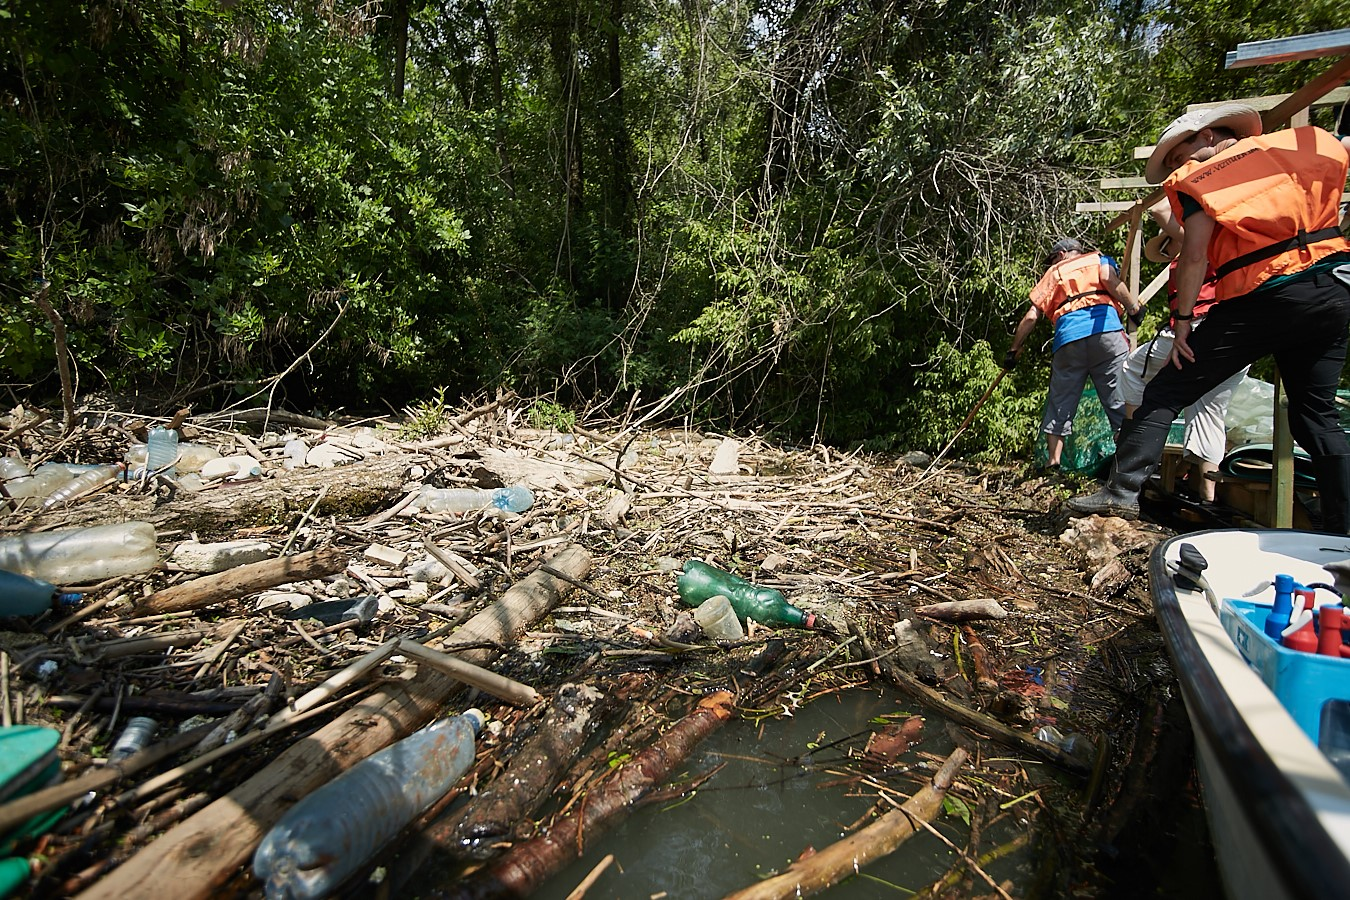 Three Tons of Plastic Waste Removed From Tisza and Reservoir by PET Cup Participants